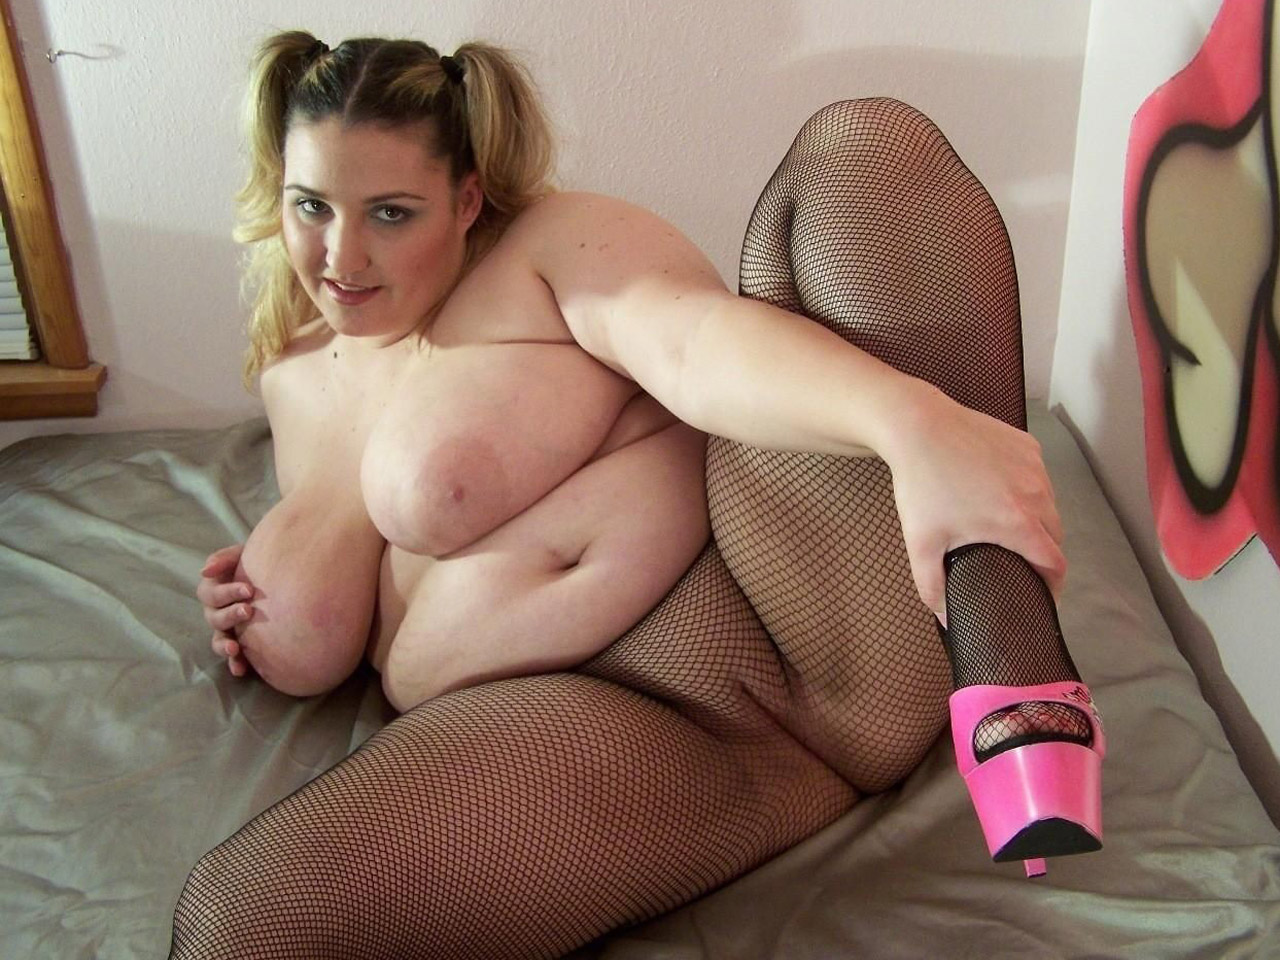 Bbw hd photo sexy pic